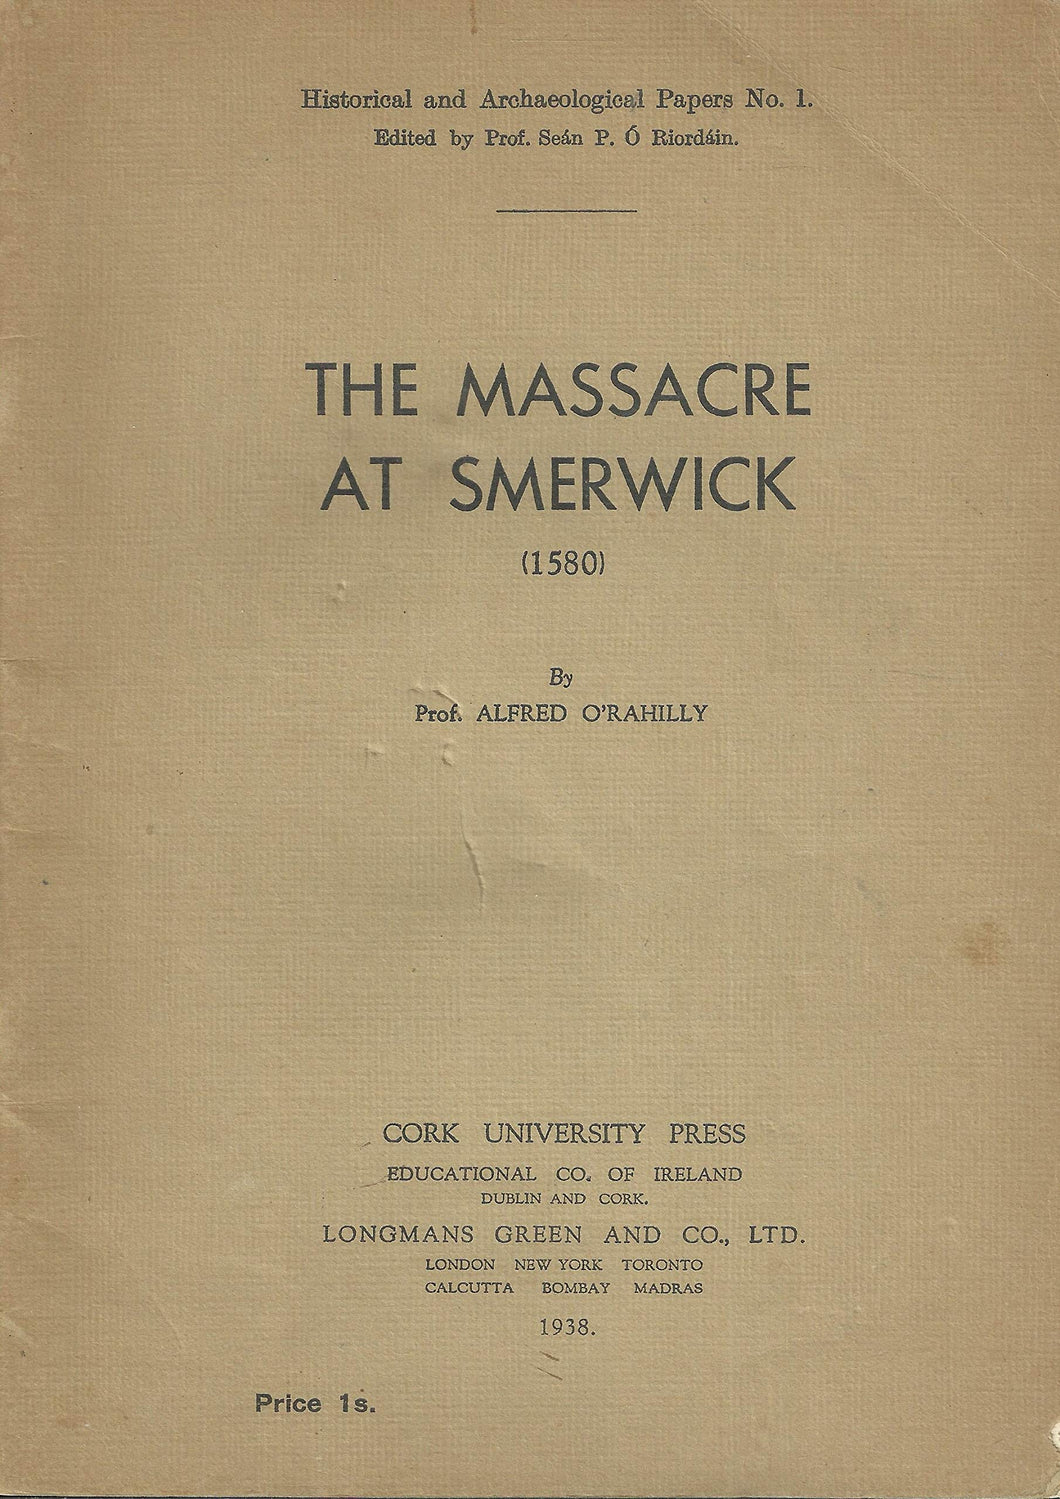 The Massacre at Smerwick, 1580. Reprinted from The Journal of the Cork Historical and Archaeological Society (Historical and Archaeological Papers. no. 1.)